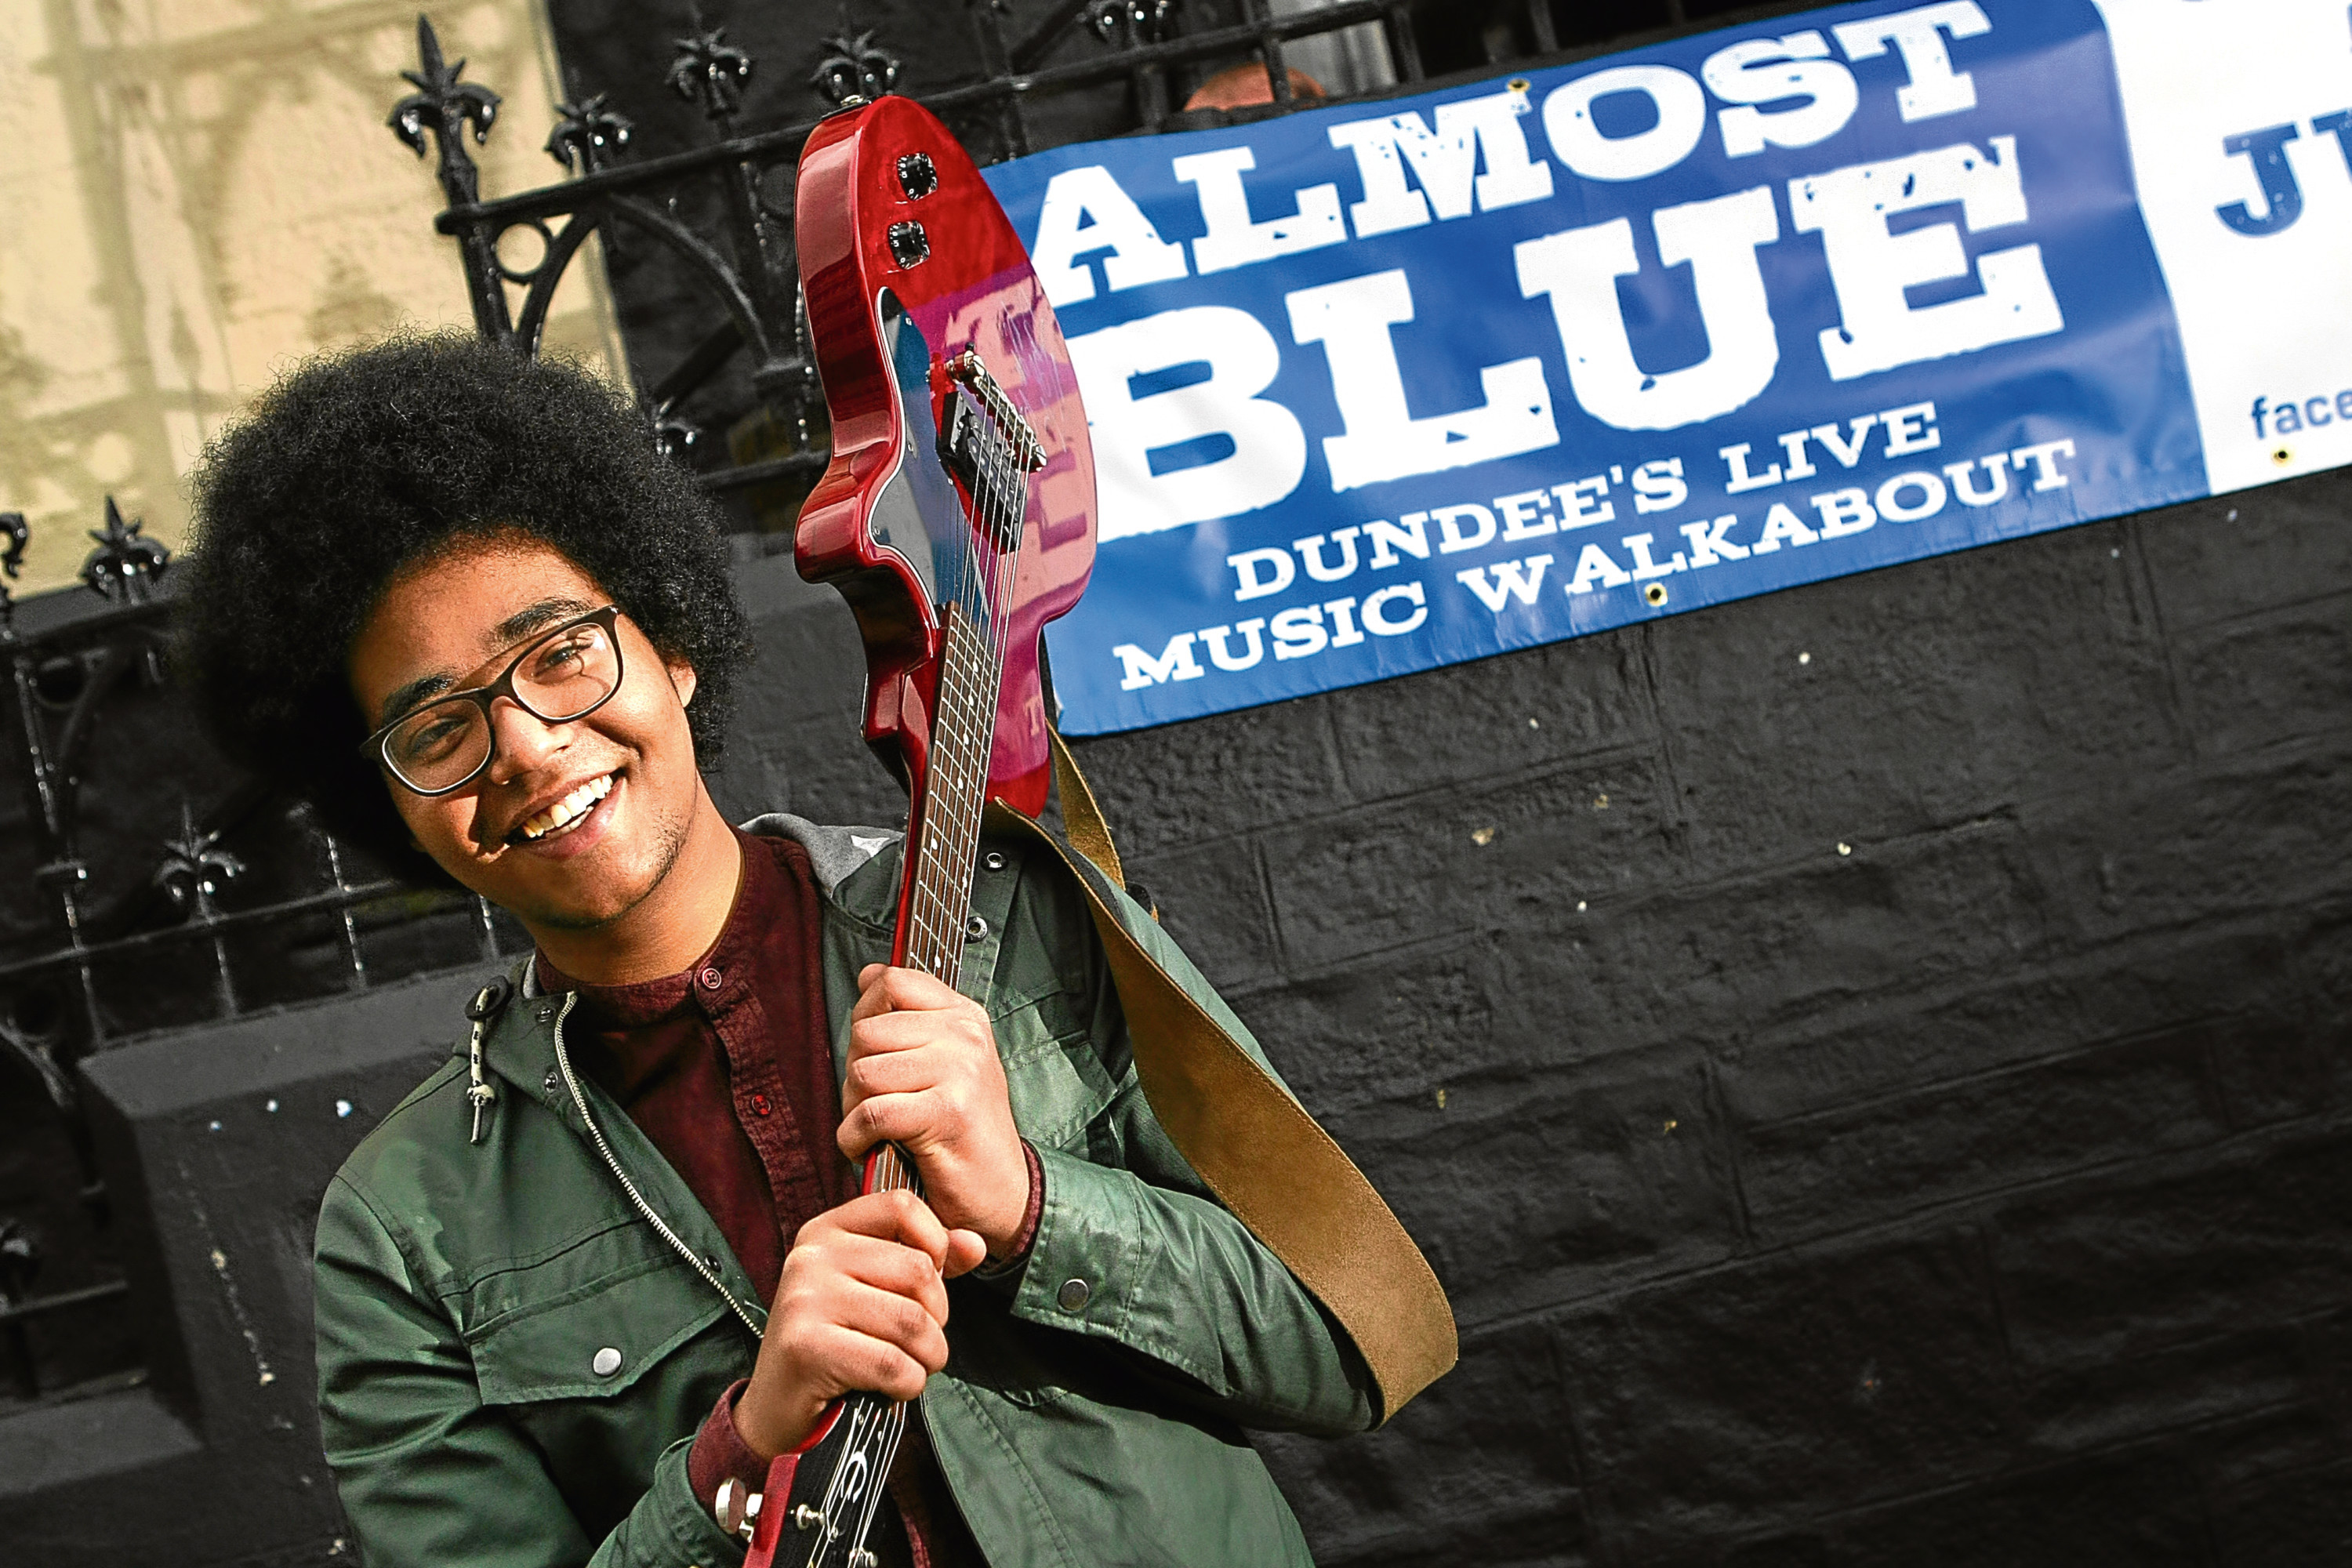 Almost Blue festival is returning to Dundee this summer for the seventh year in a row.